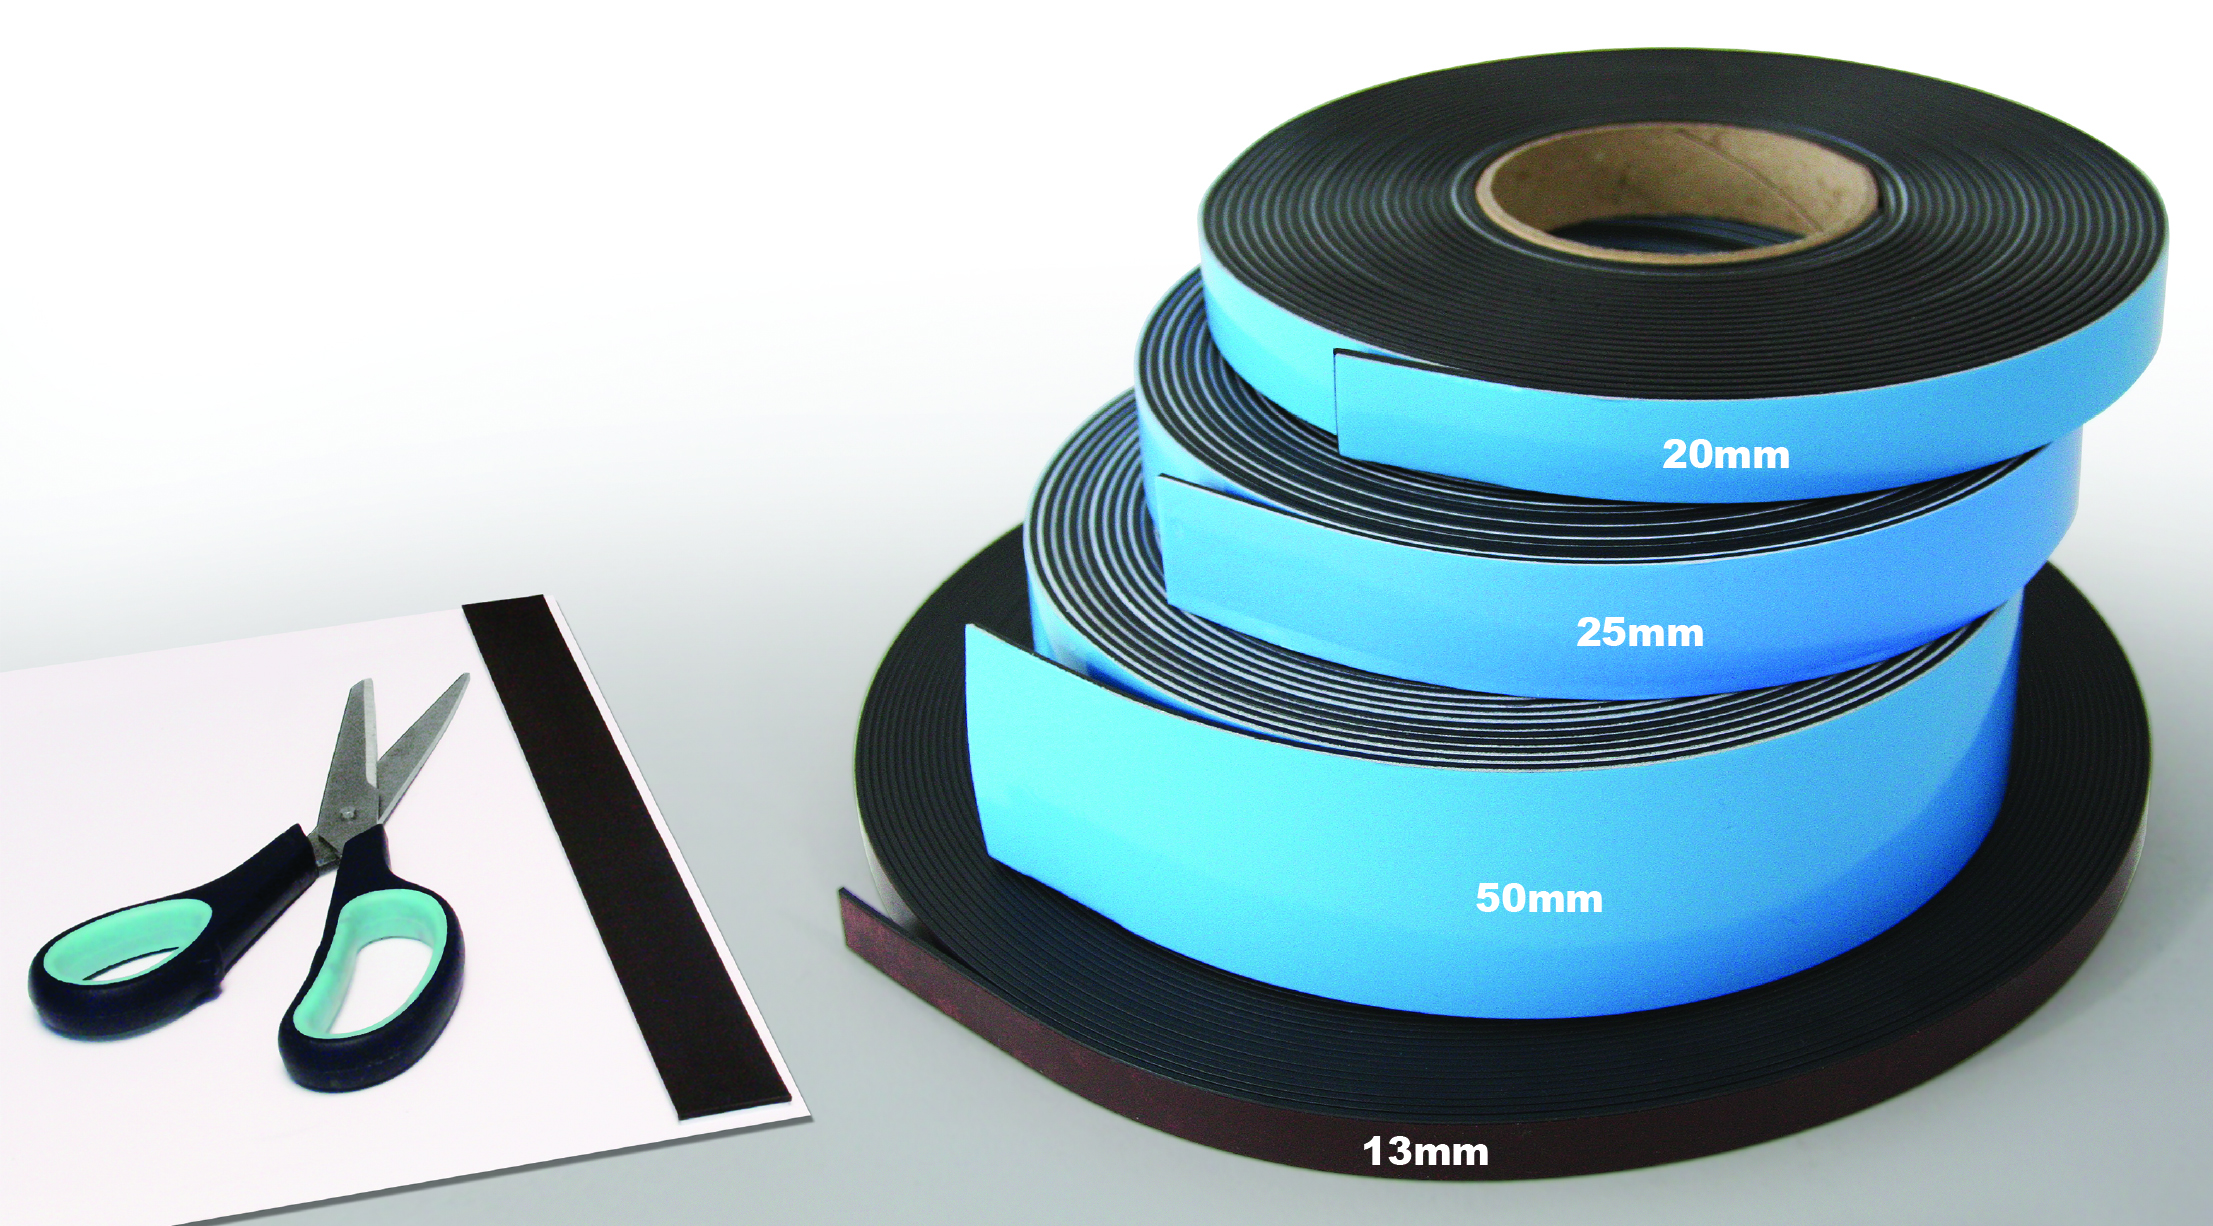 magneti strip tape with adhesive backing